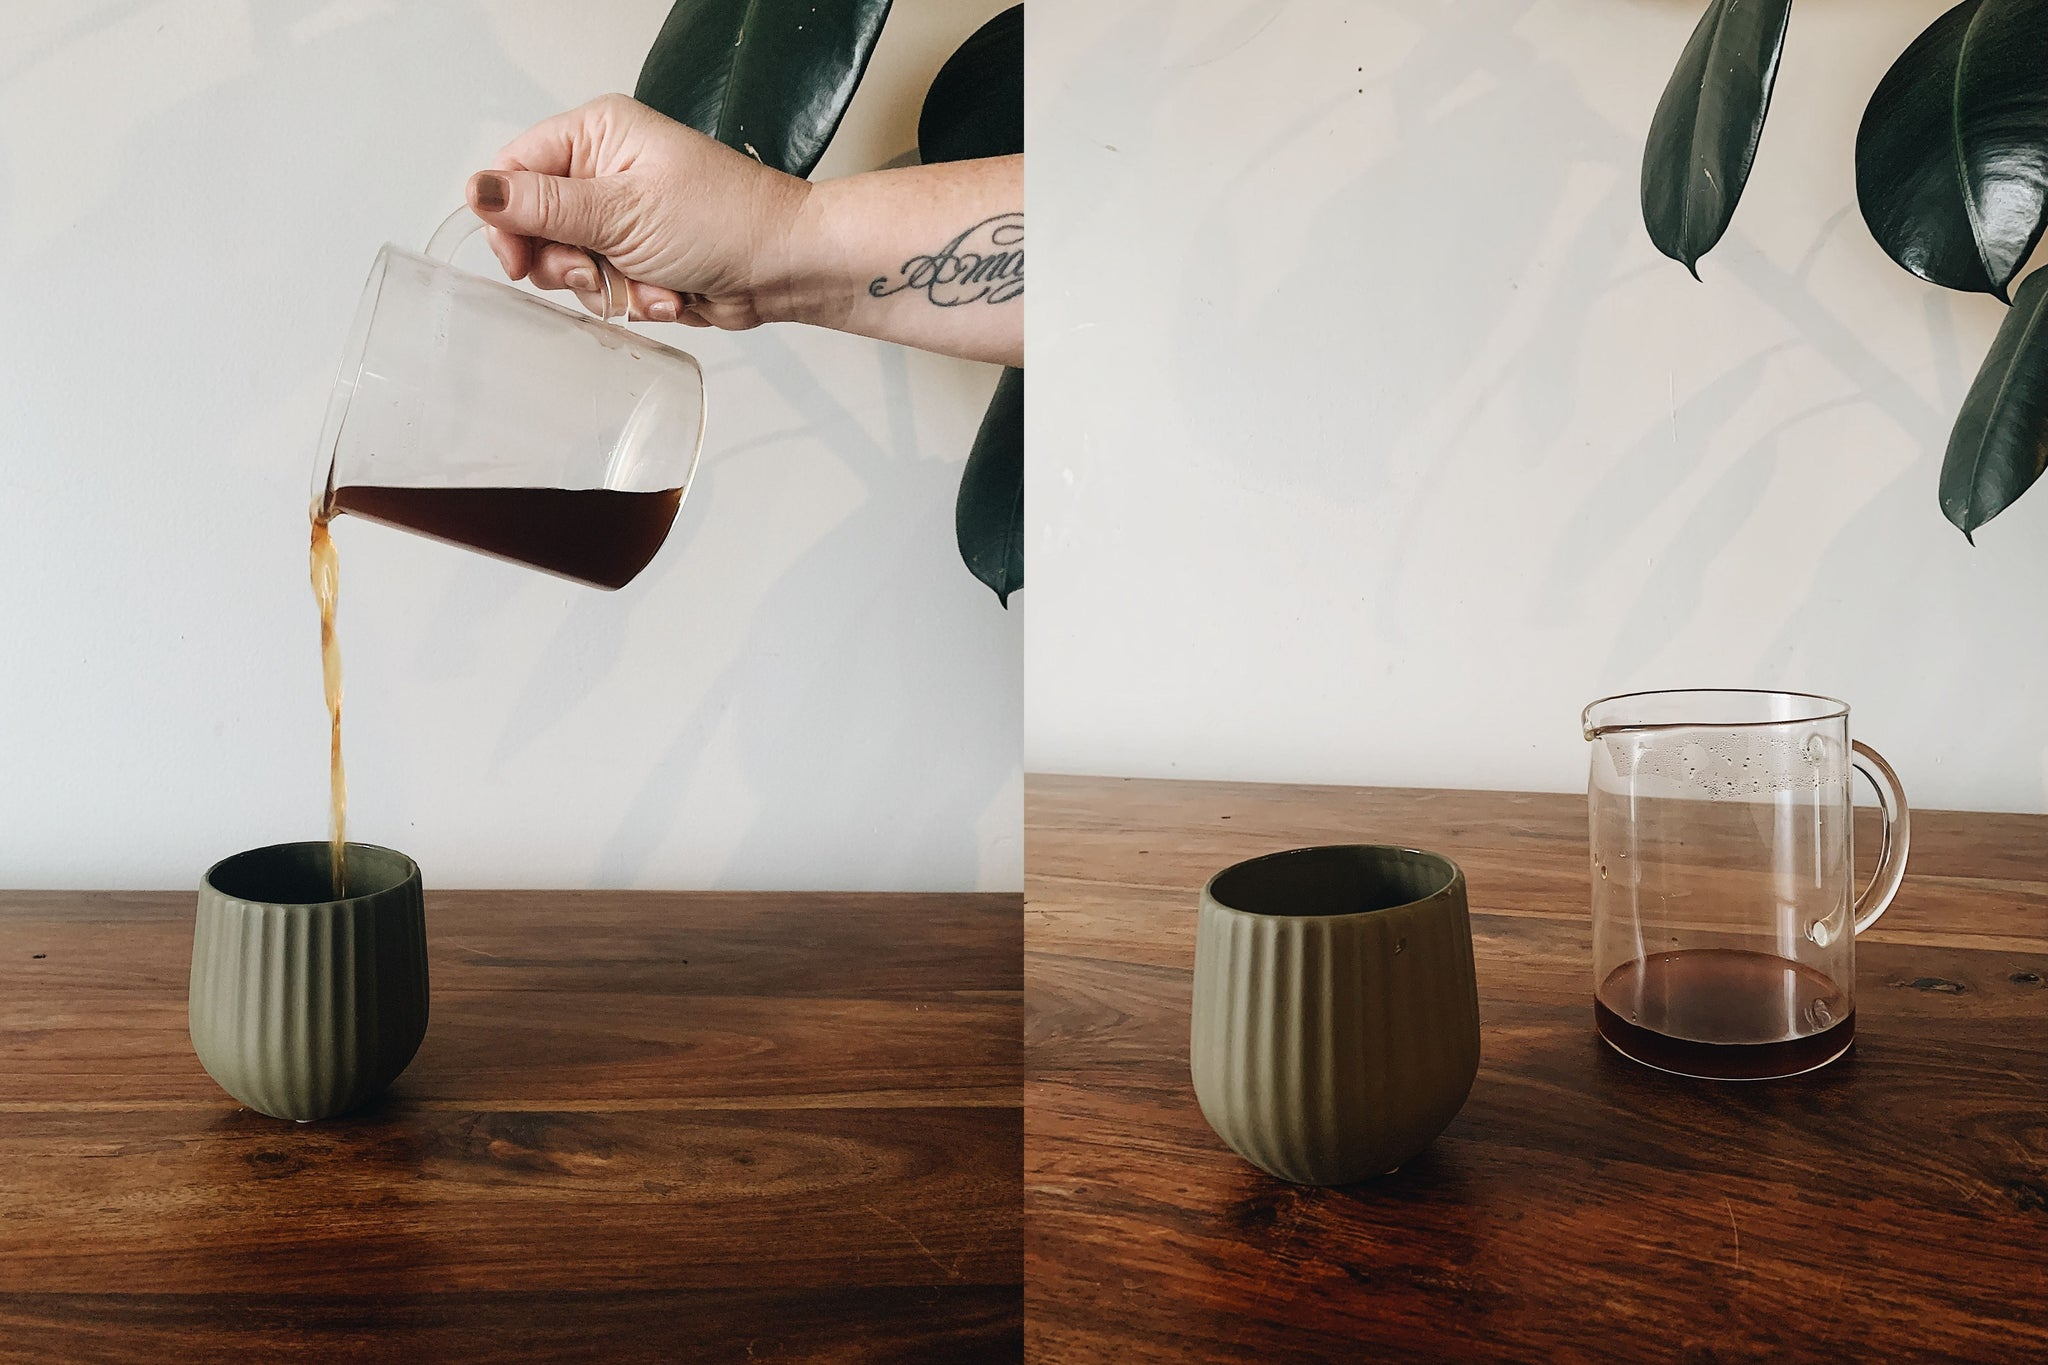 L: Pouring brewed coffee from VacOne carafe into grey cup; R: grey cup and VacOne carafe with coffee